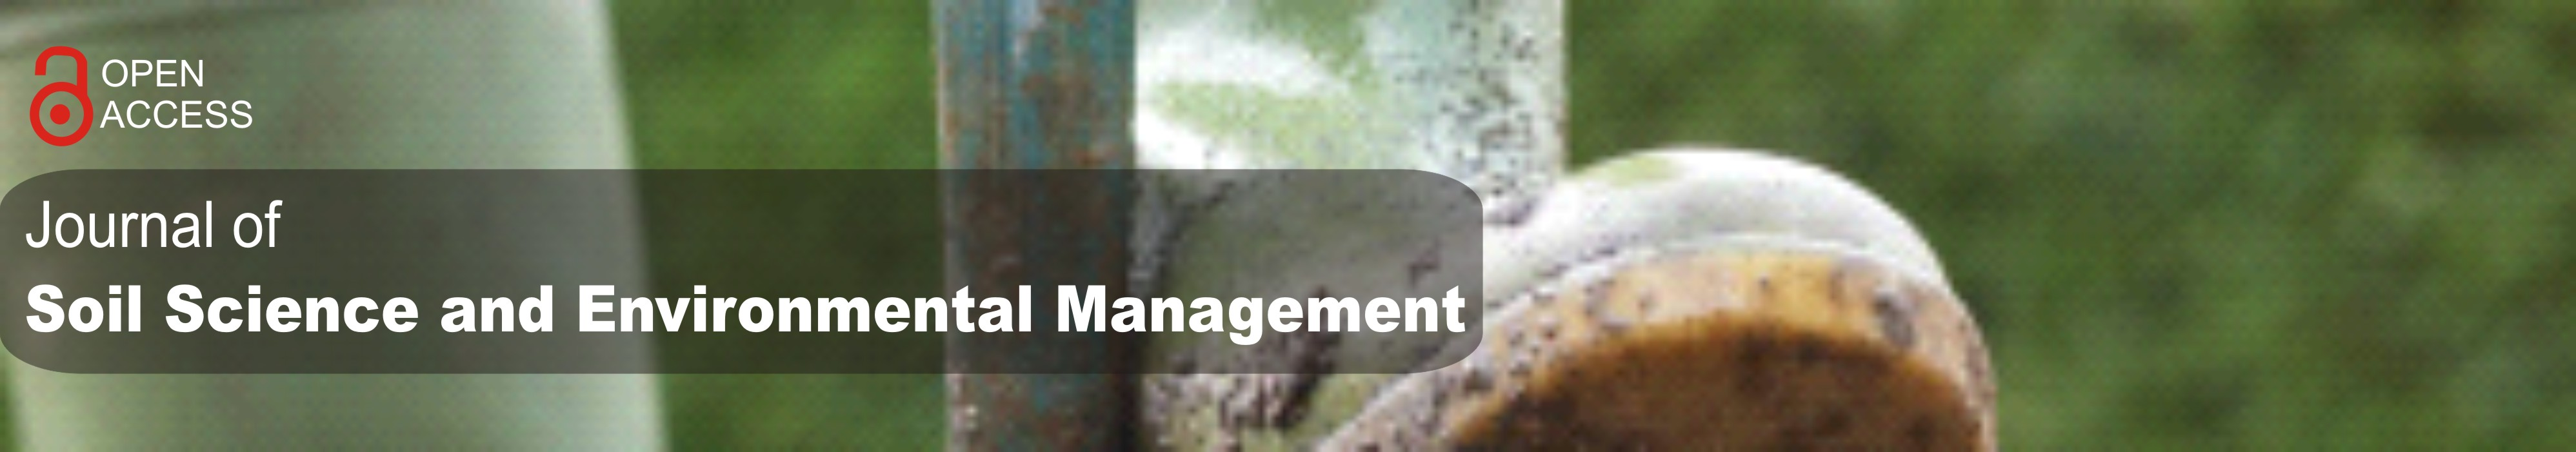 Journal of Soil Science and Environmental Management